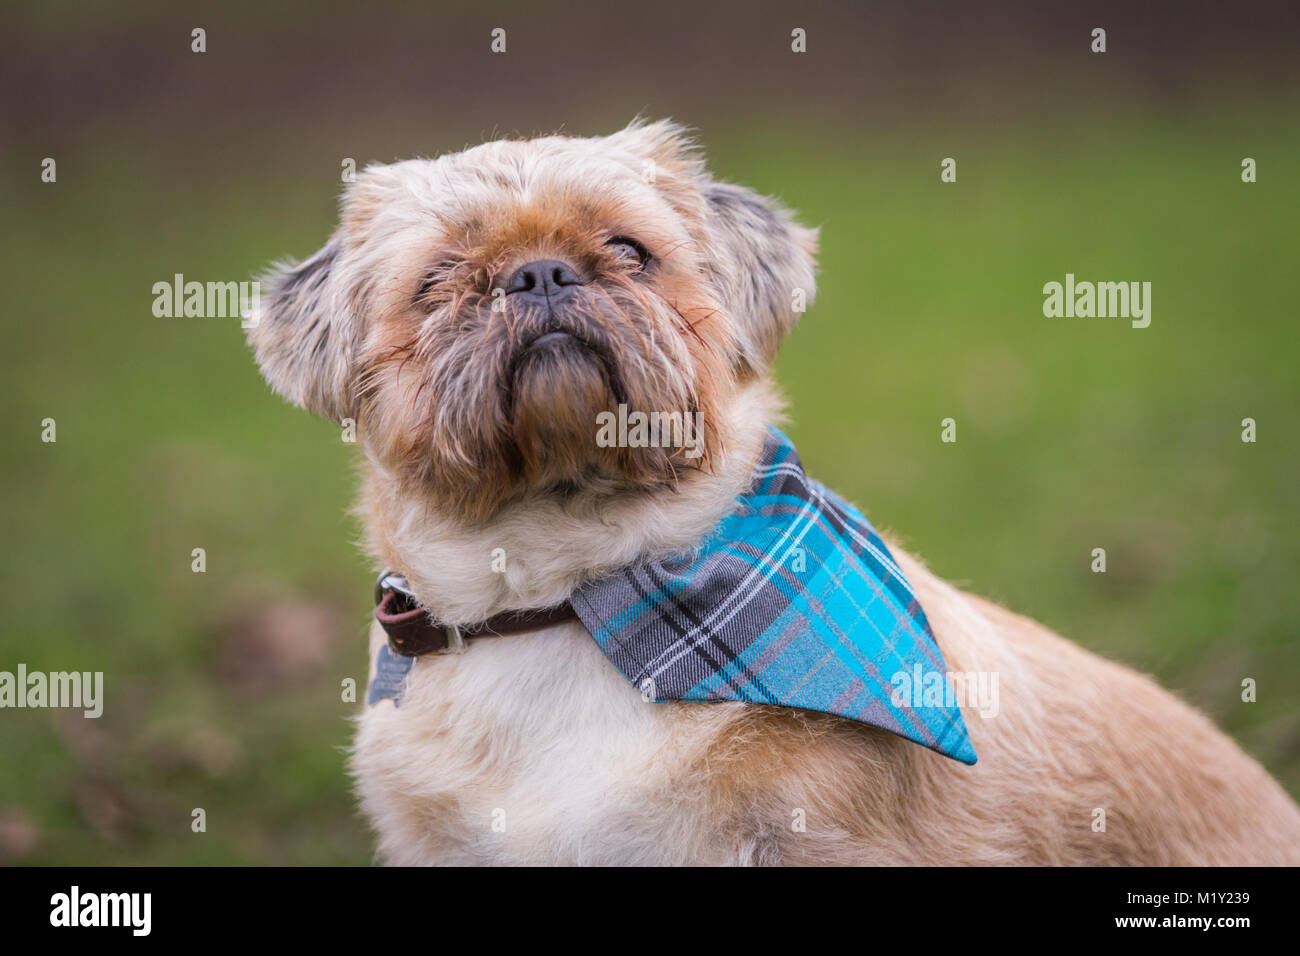 Pug Shih Tzu Cross Puppy Outside In Park Stock Photo 173312701 Alamy